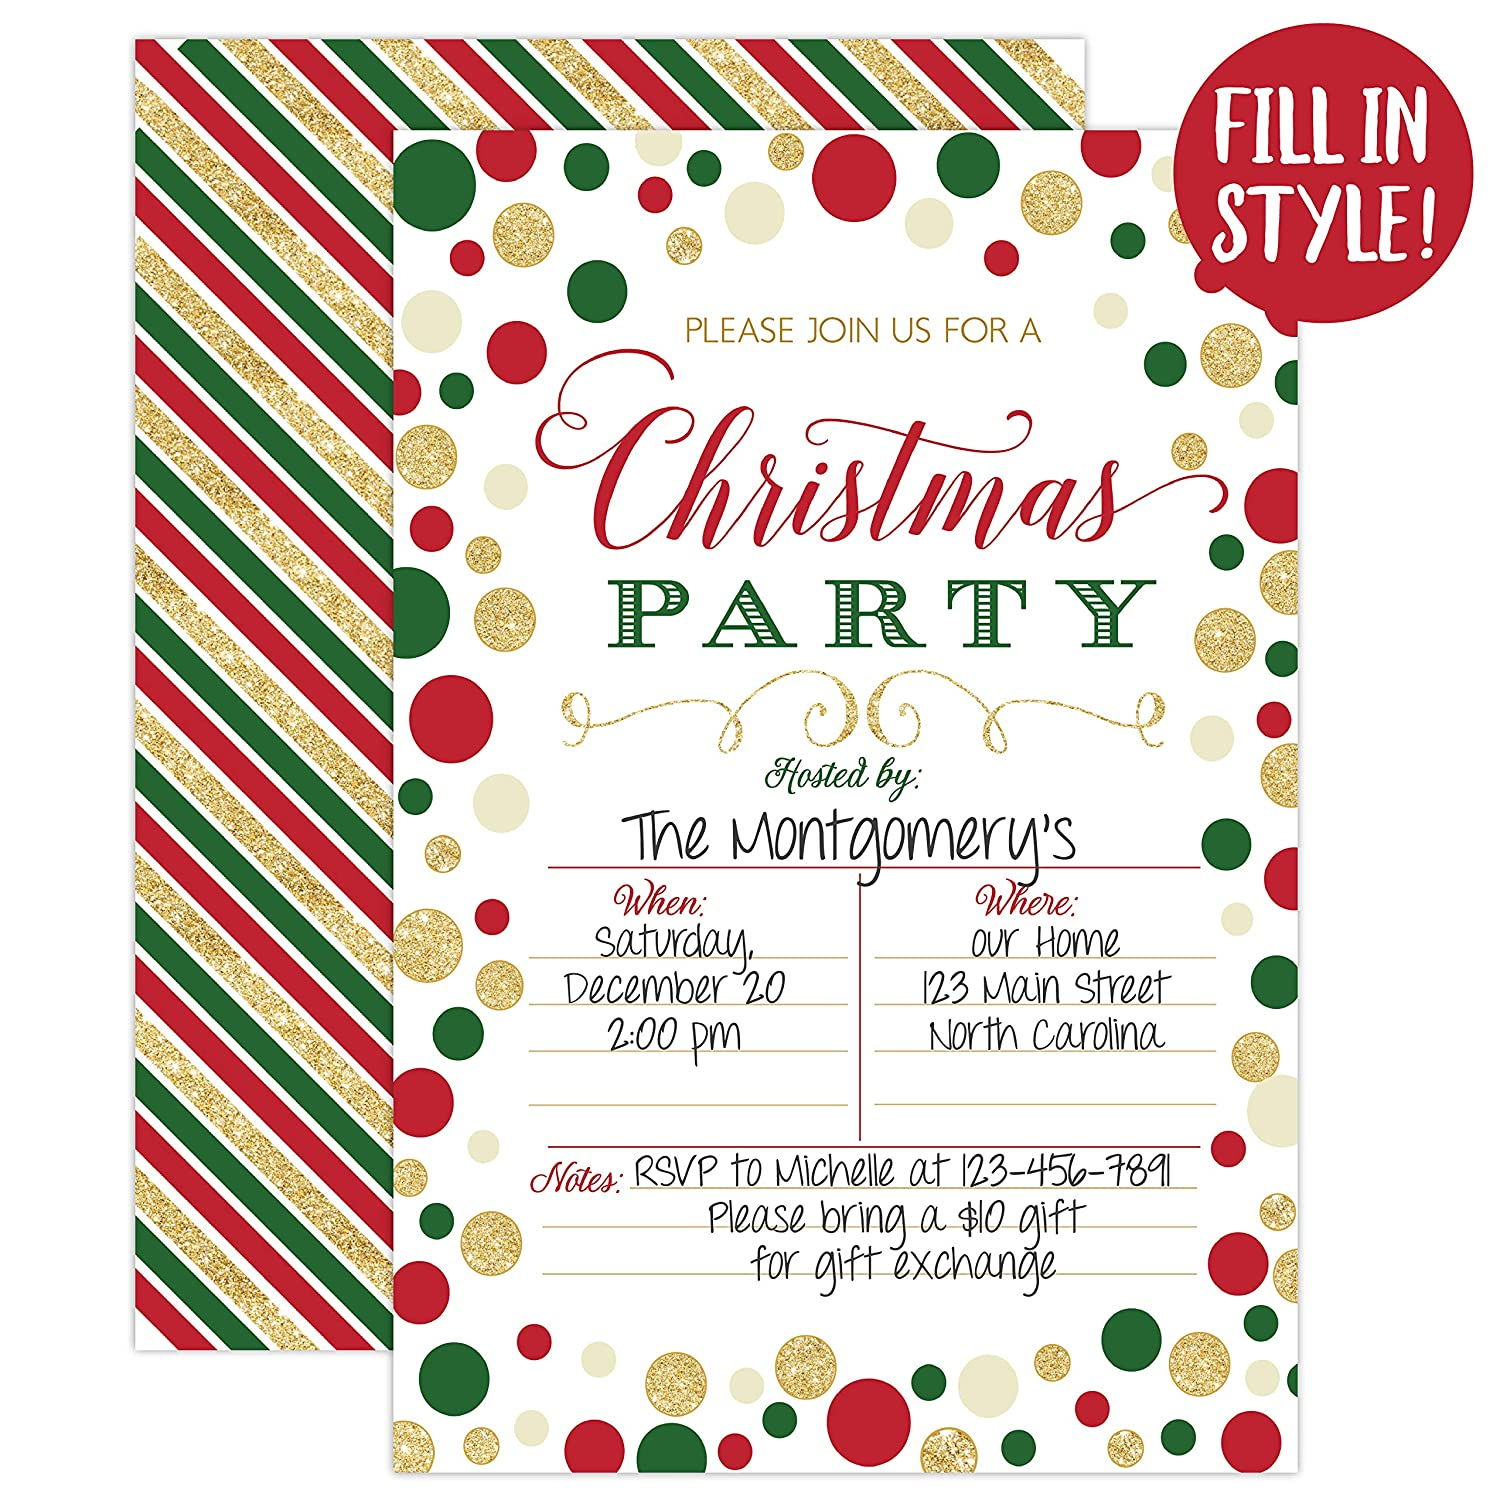 Christmas Party Invitation.Christmas Party Invitation Christmas Party Invite Christmas Party Holiday Party Invitations 20 Fill In Invitations And Envelopes